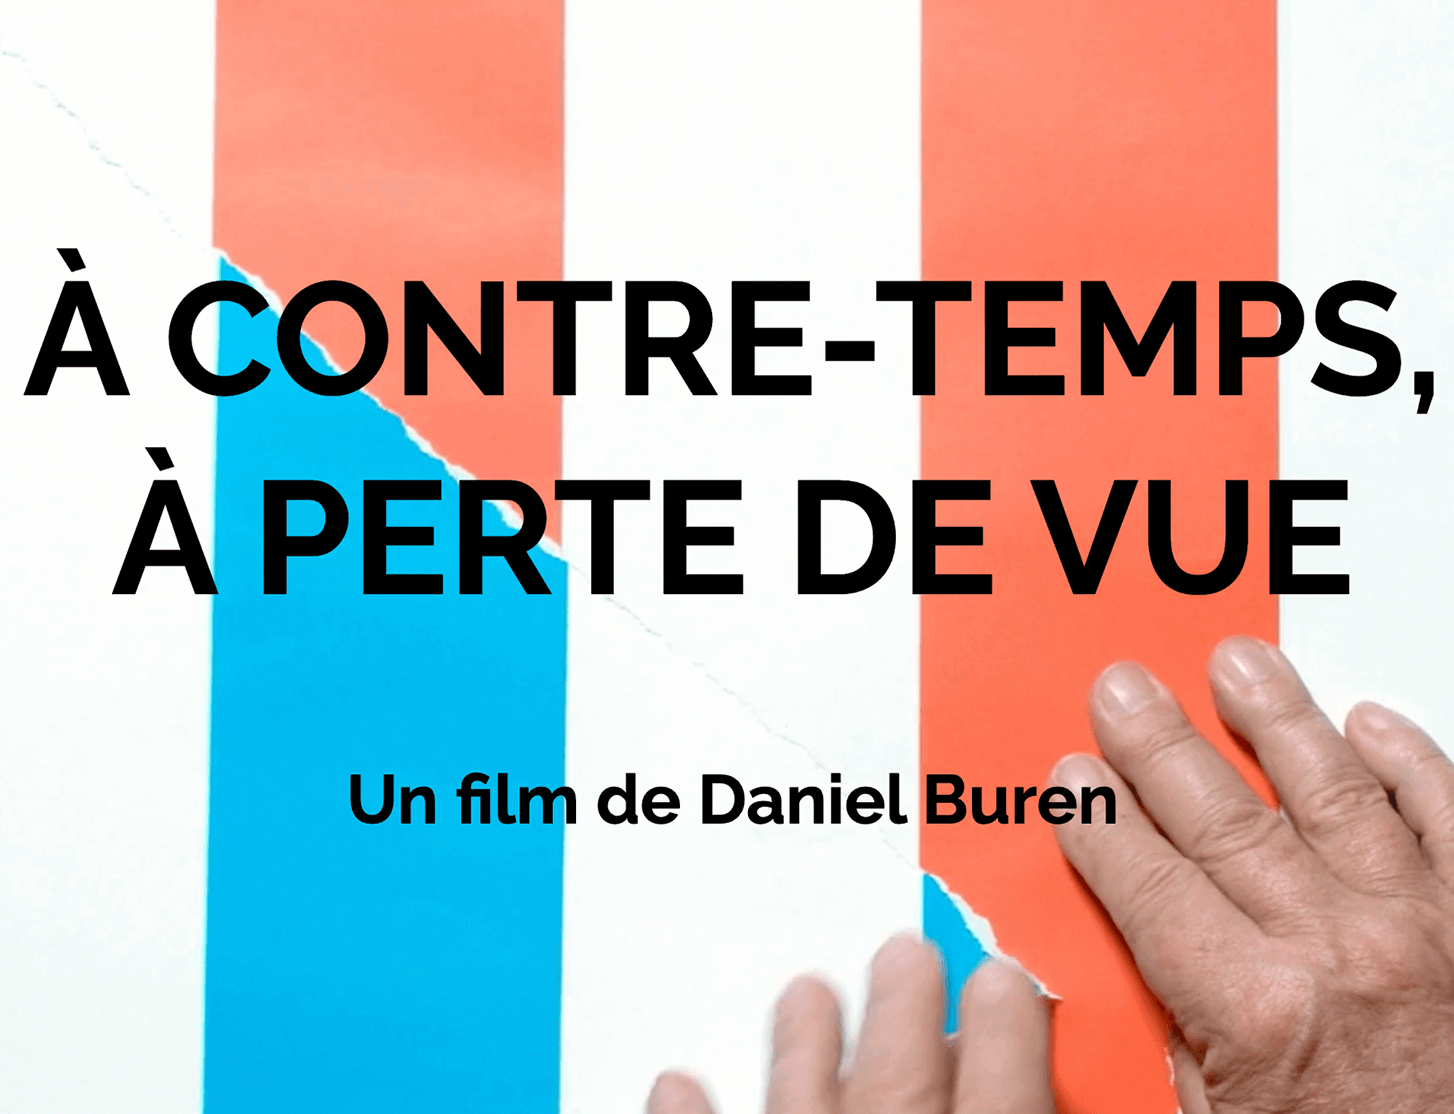 Daniel Buren releases film documenting his career from the 1960s to the present